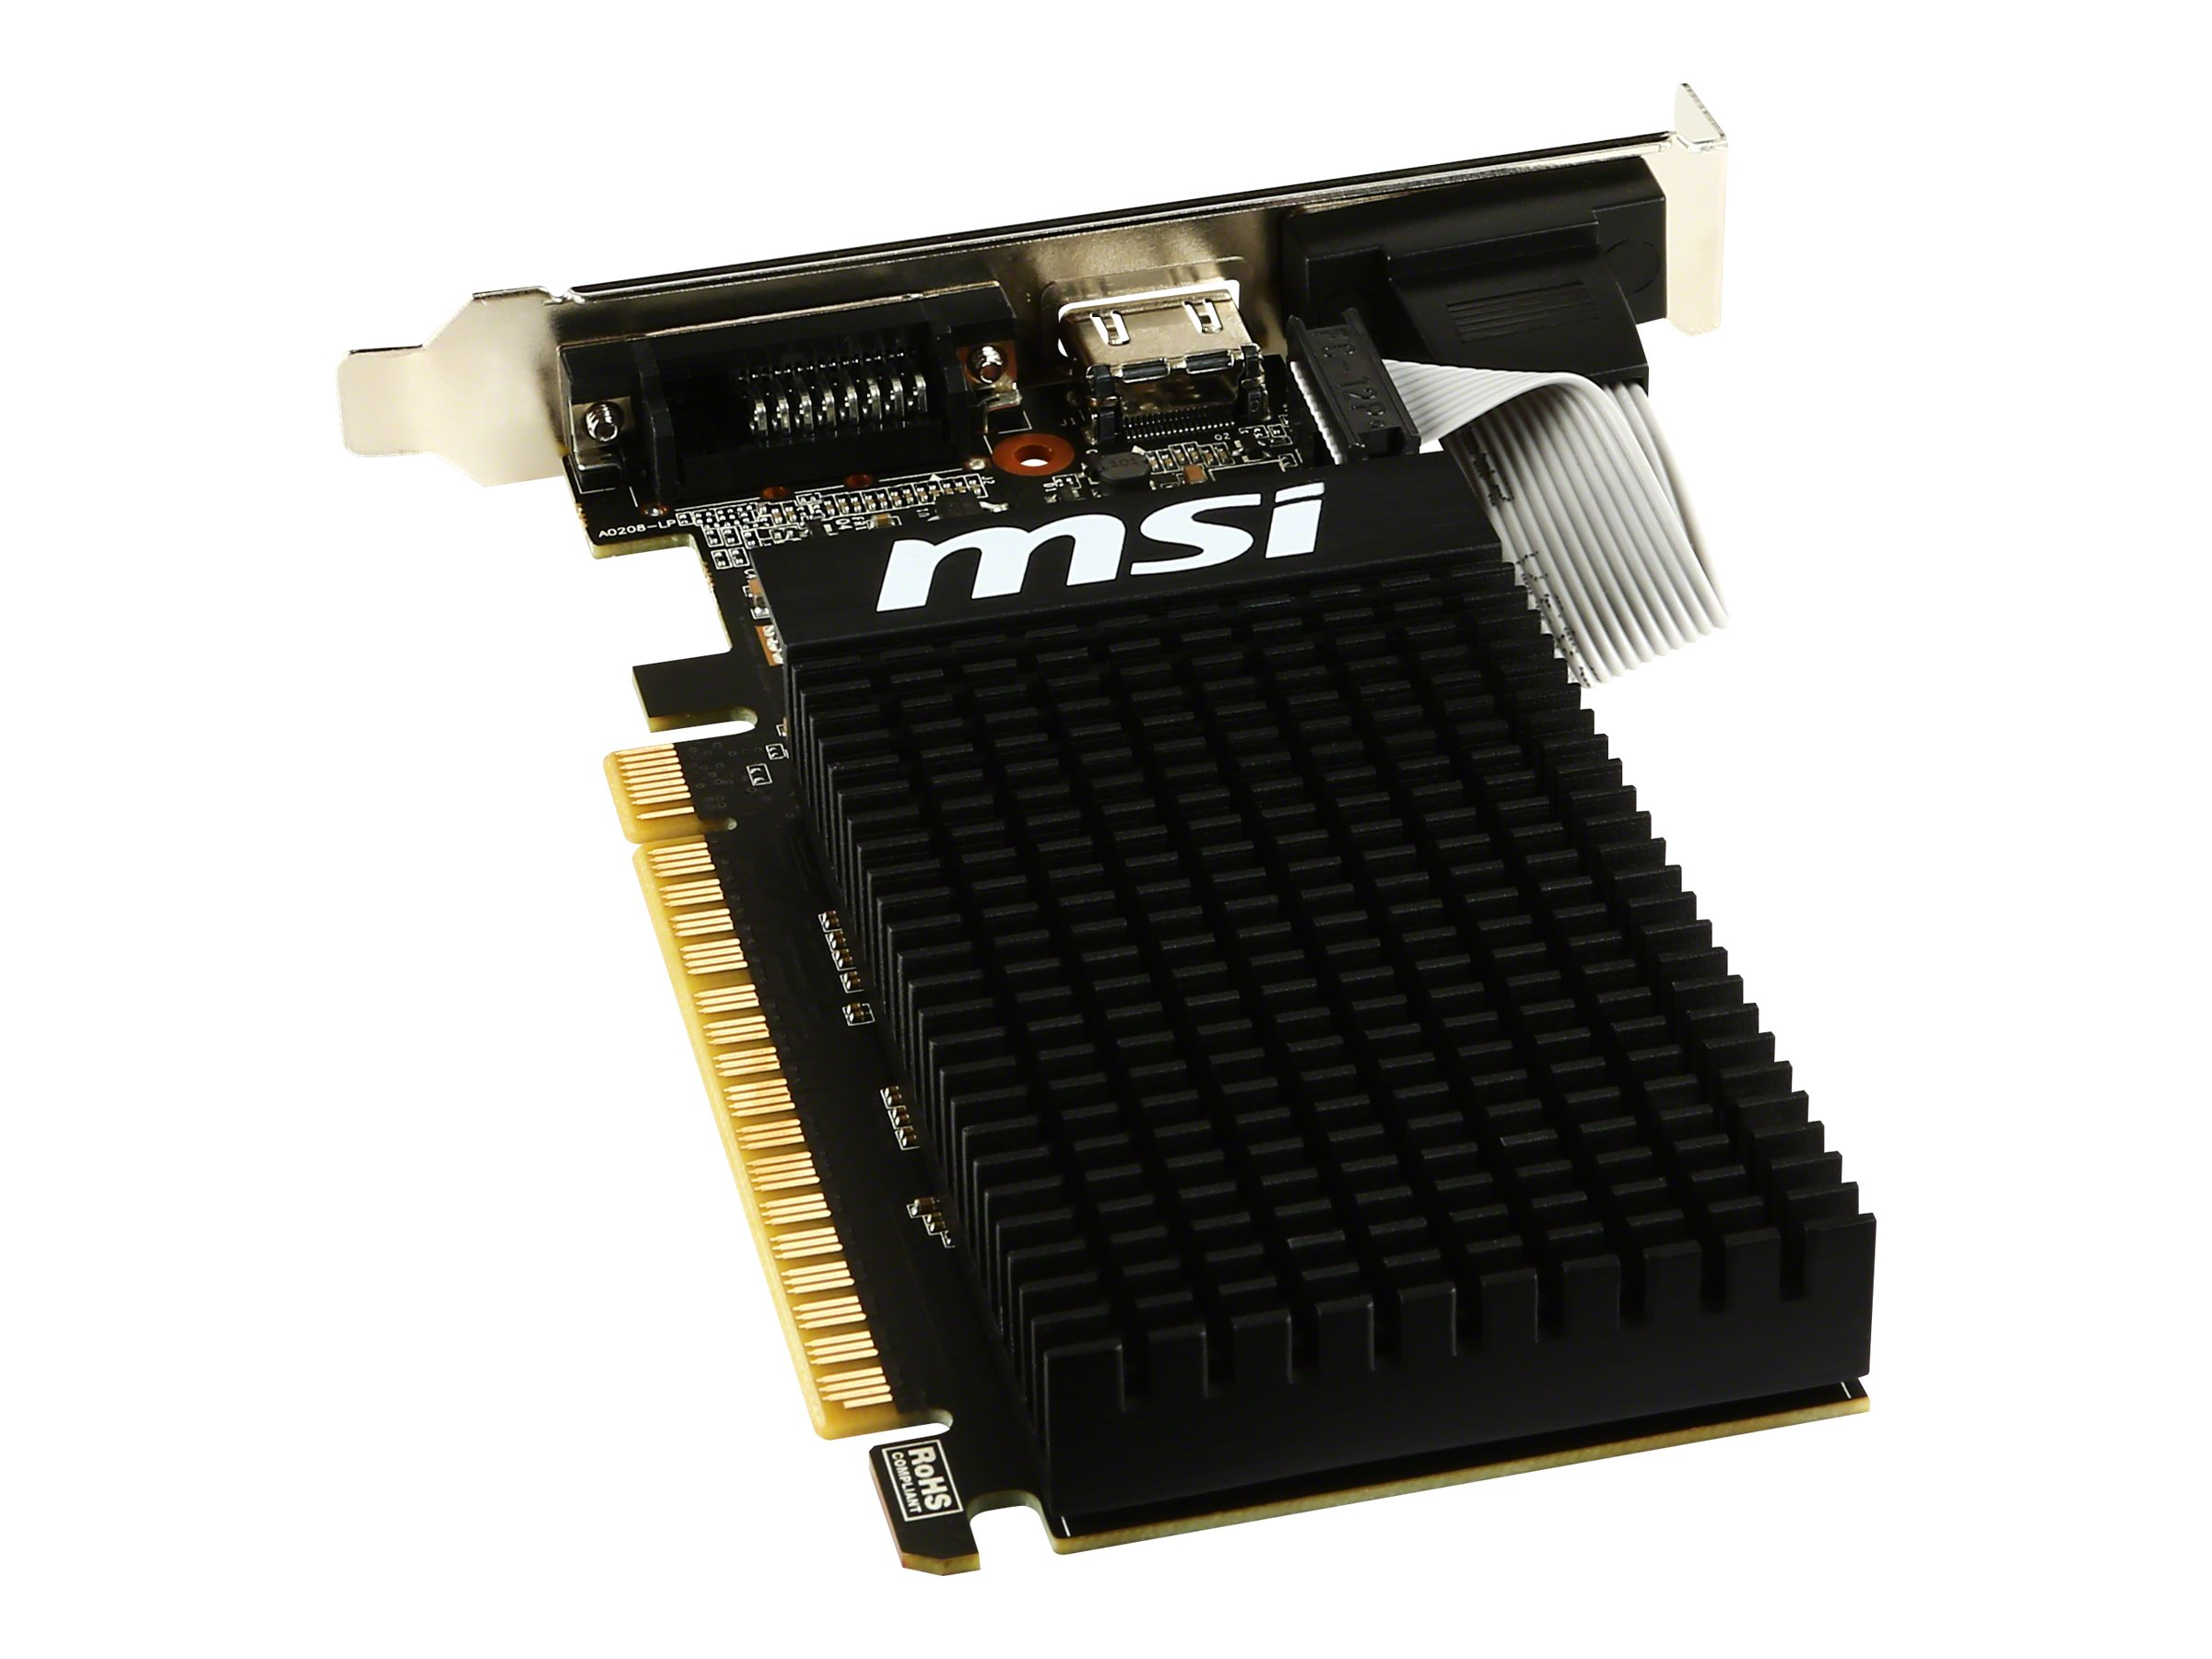 Microstar GeForce GT 710 PCIe 2.0 x8 Graphics Card, 2GB DDR3, GT 710 2GD3H LP